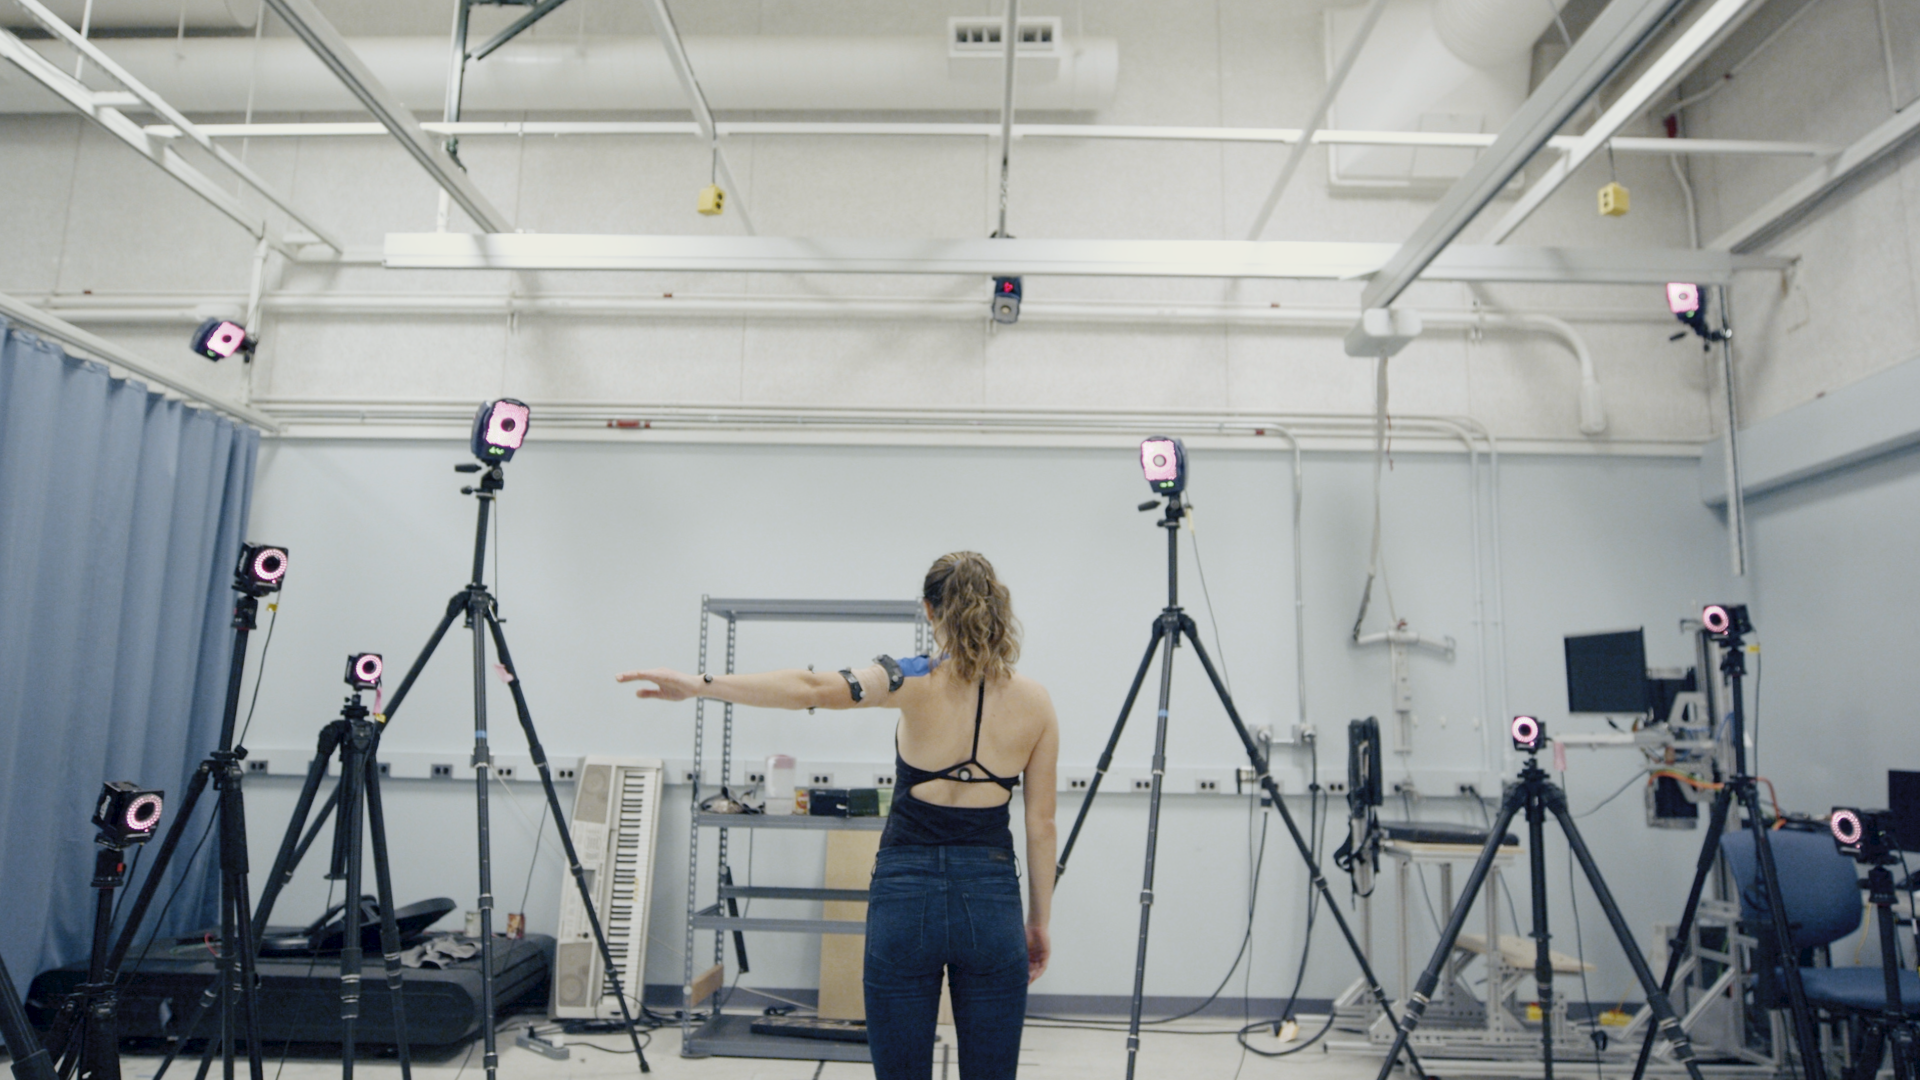 The motion capture cameras and kirigami sensor pick up first author Erin Evke's arm movements, enabling the team to match the reading from the sensor to the position of her shoulder. Image credit: Levi Hutmacher, Michigan Engineering